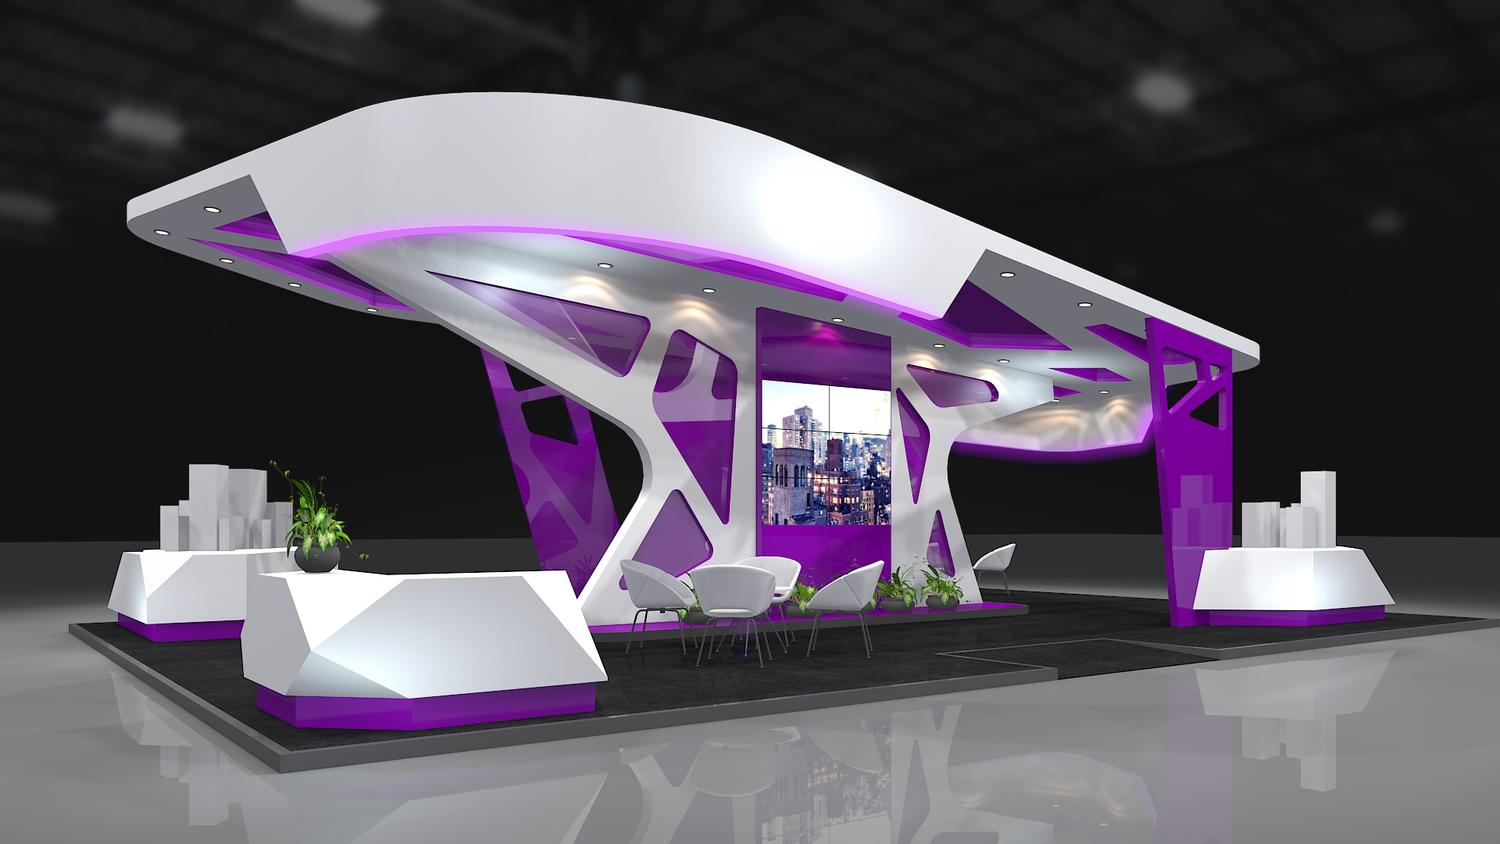 Get the Best Exhibition Booth Design for an Affordable Price